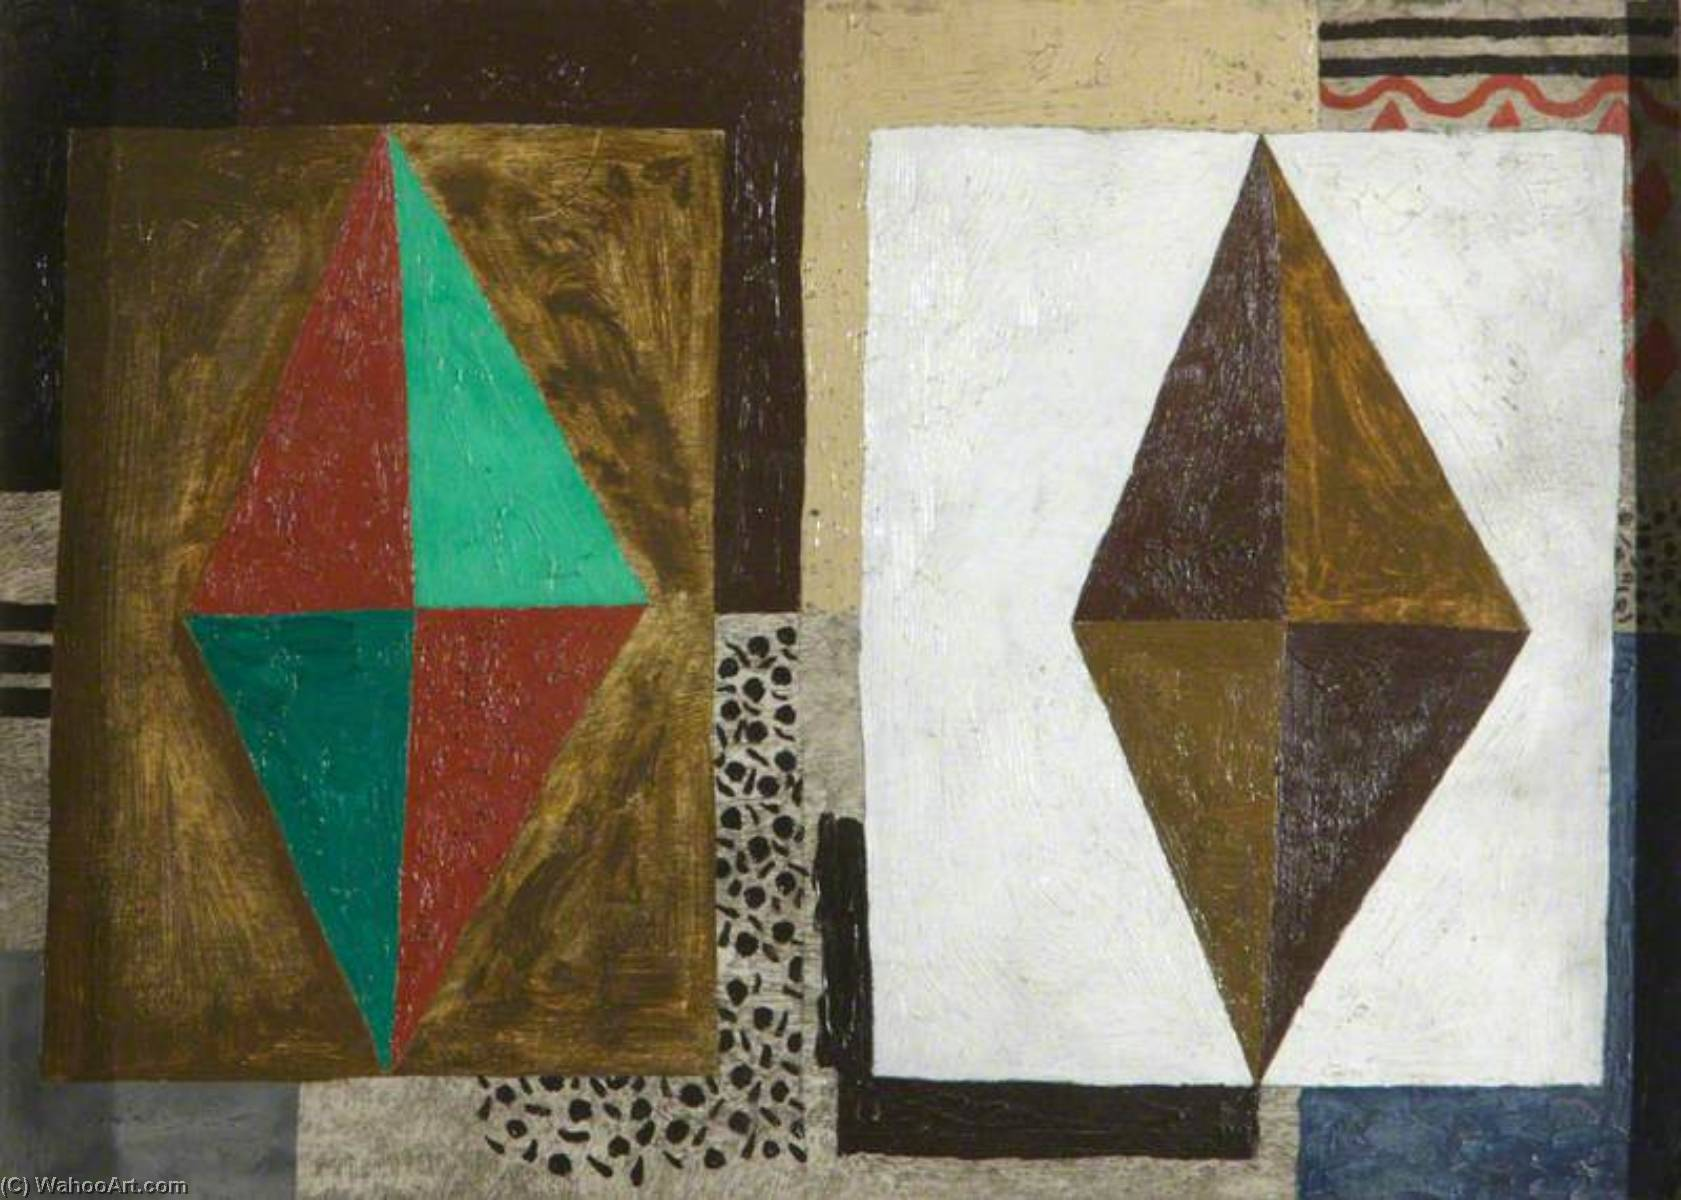 1929 (composition), Oil by Ben Nicholson (1894-1982, United Kingdom)